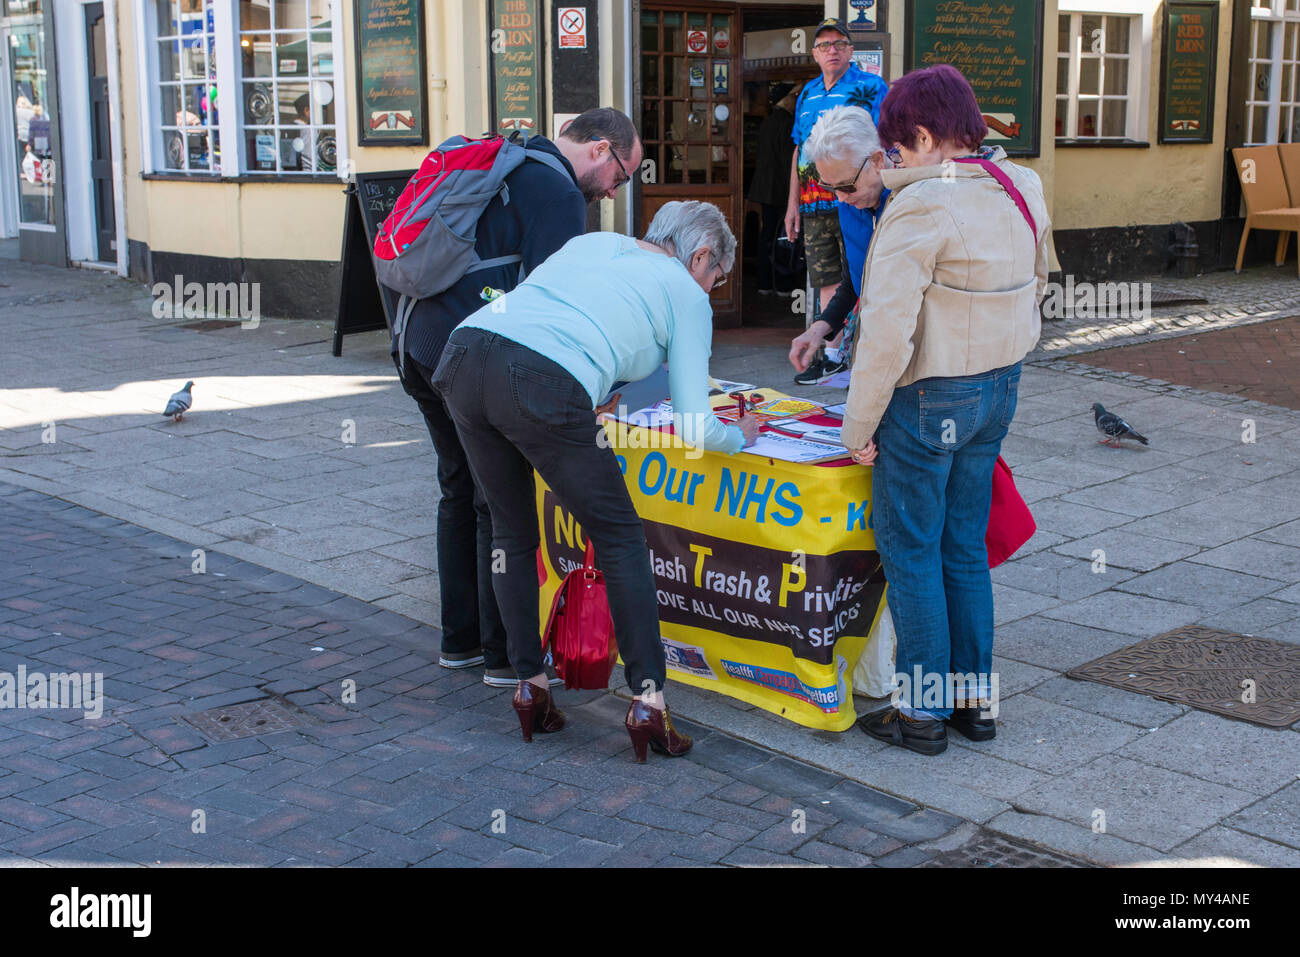 People signing a petition in support of the NHS in Ramsgate, Kent, England, UK. - Stock Image